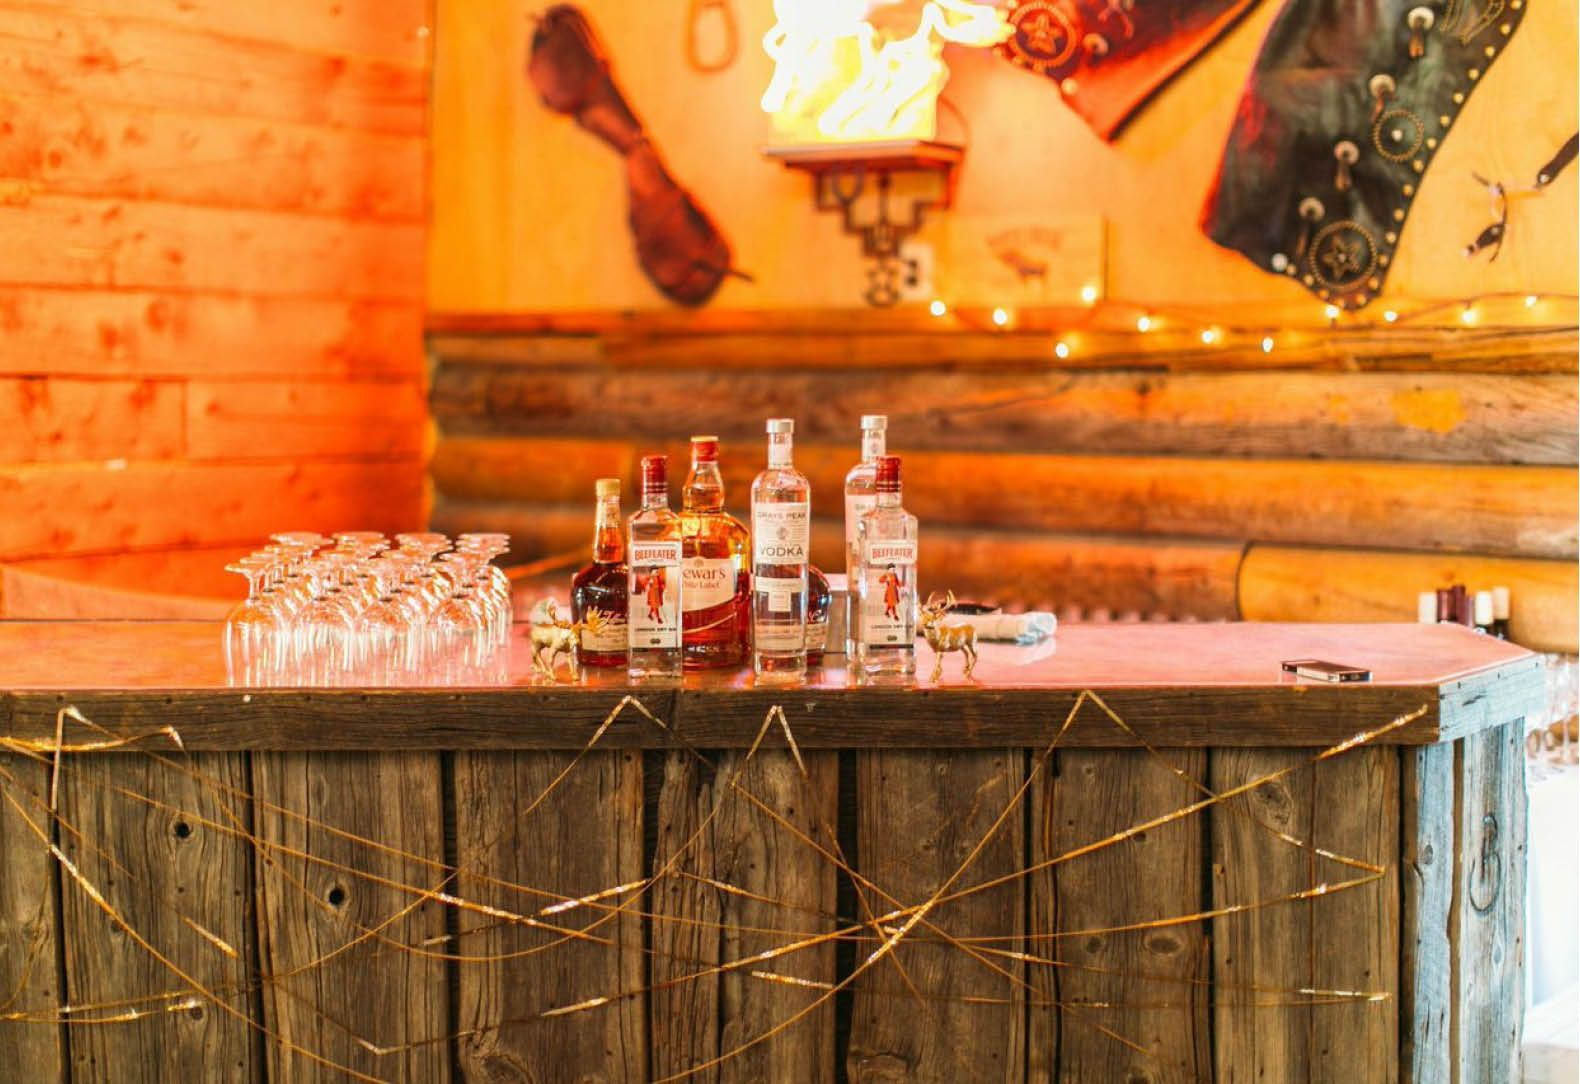 A bluegrass bash at a rustic ranch rustic chic wedding